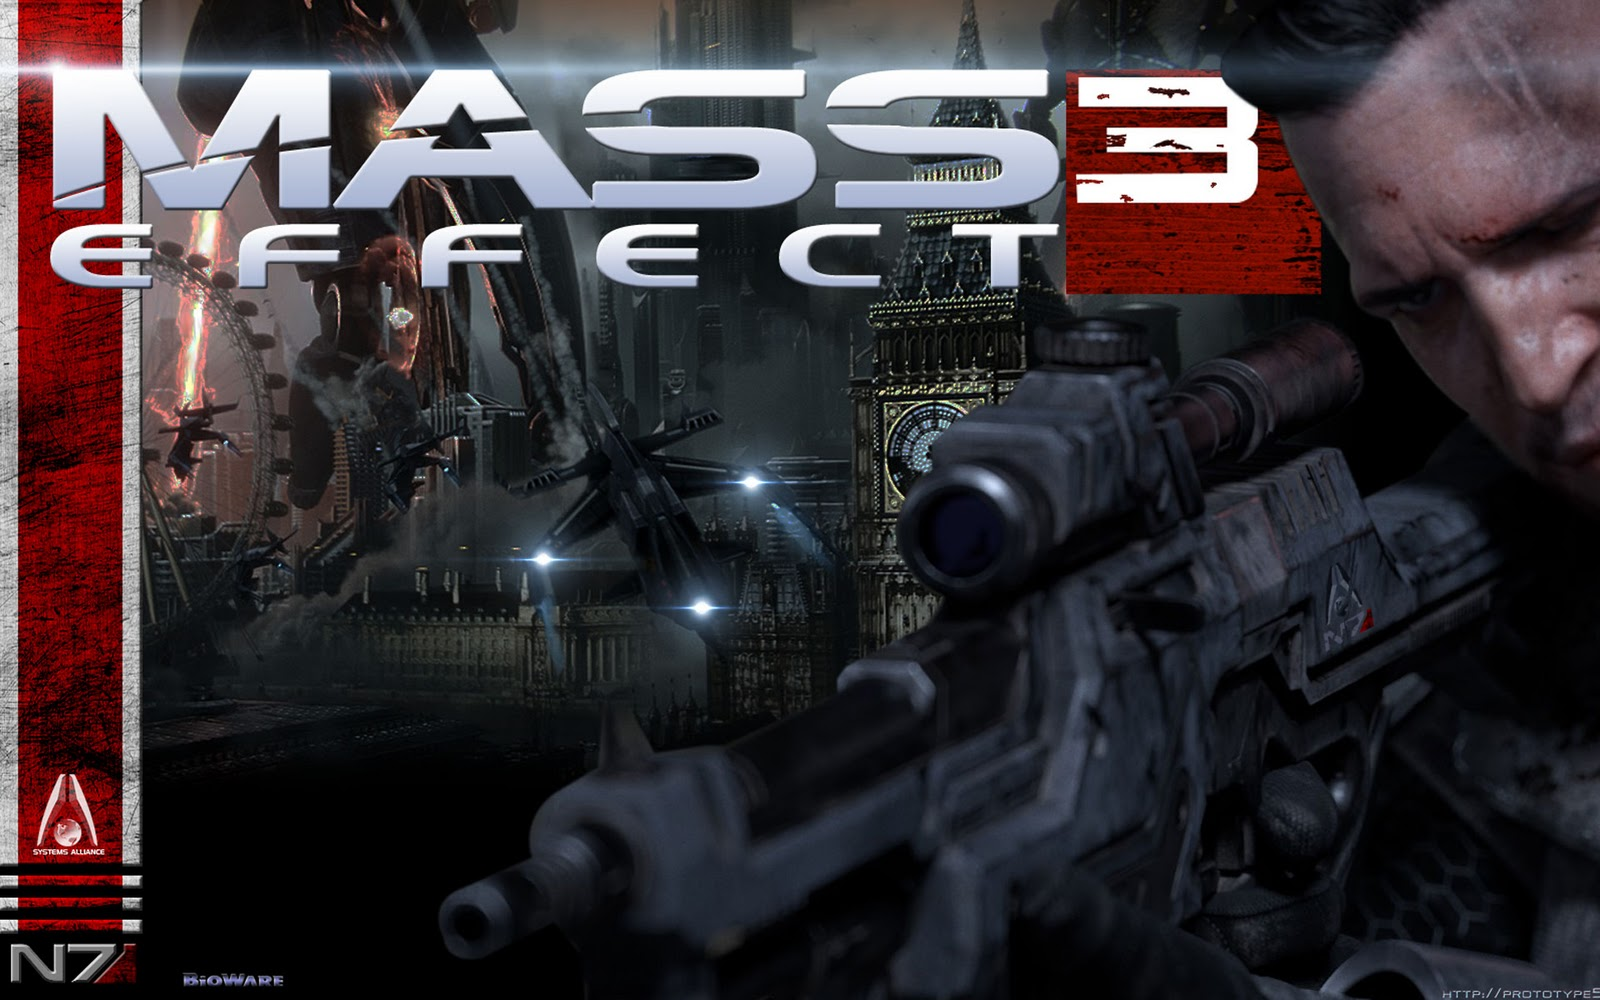 Anything currently out there like Mass Effect 3 multiplayer?